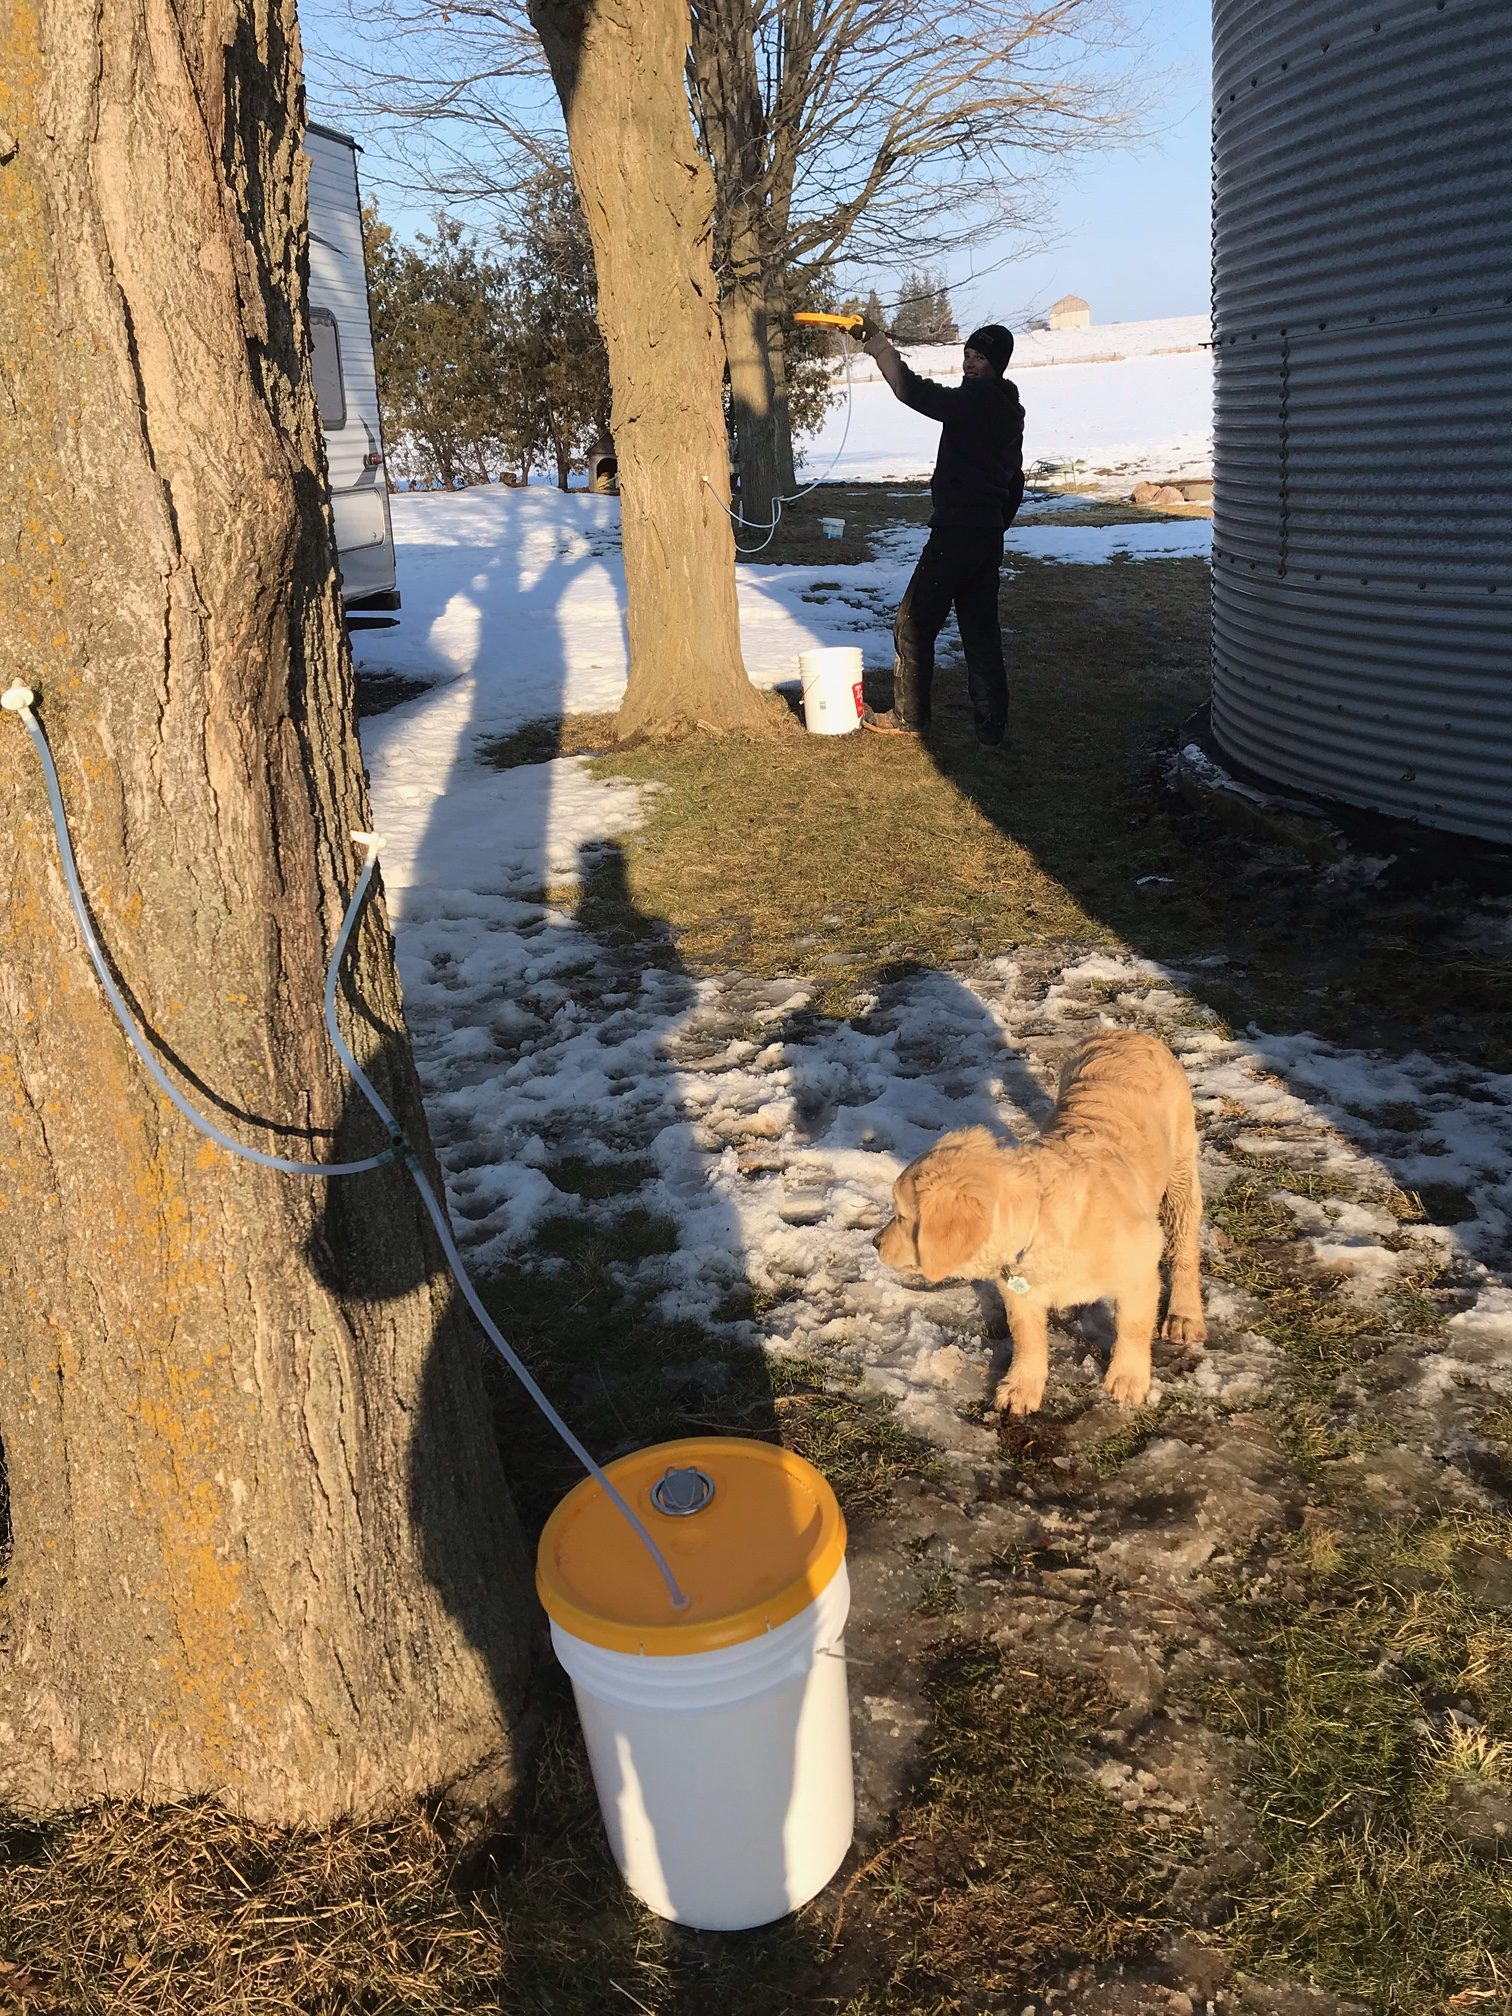 Tapped tree collecting sap with member in background tapping the next tree